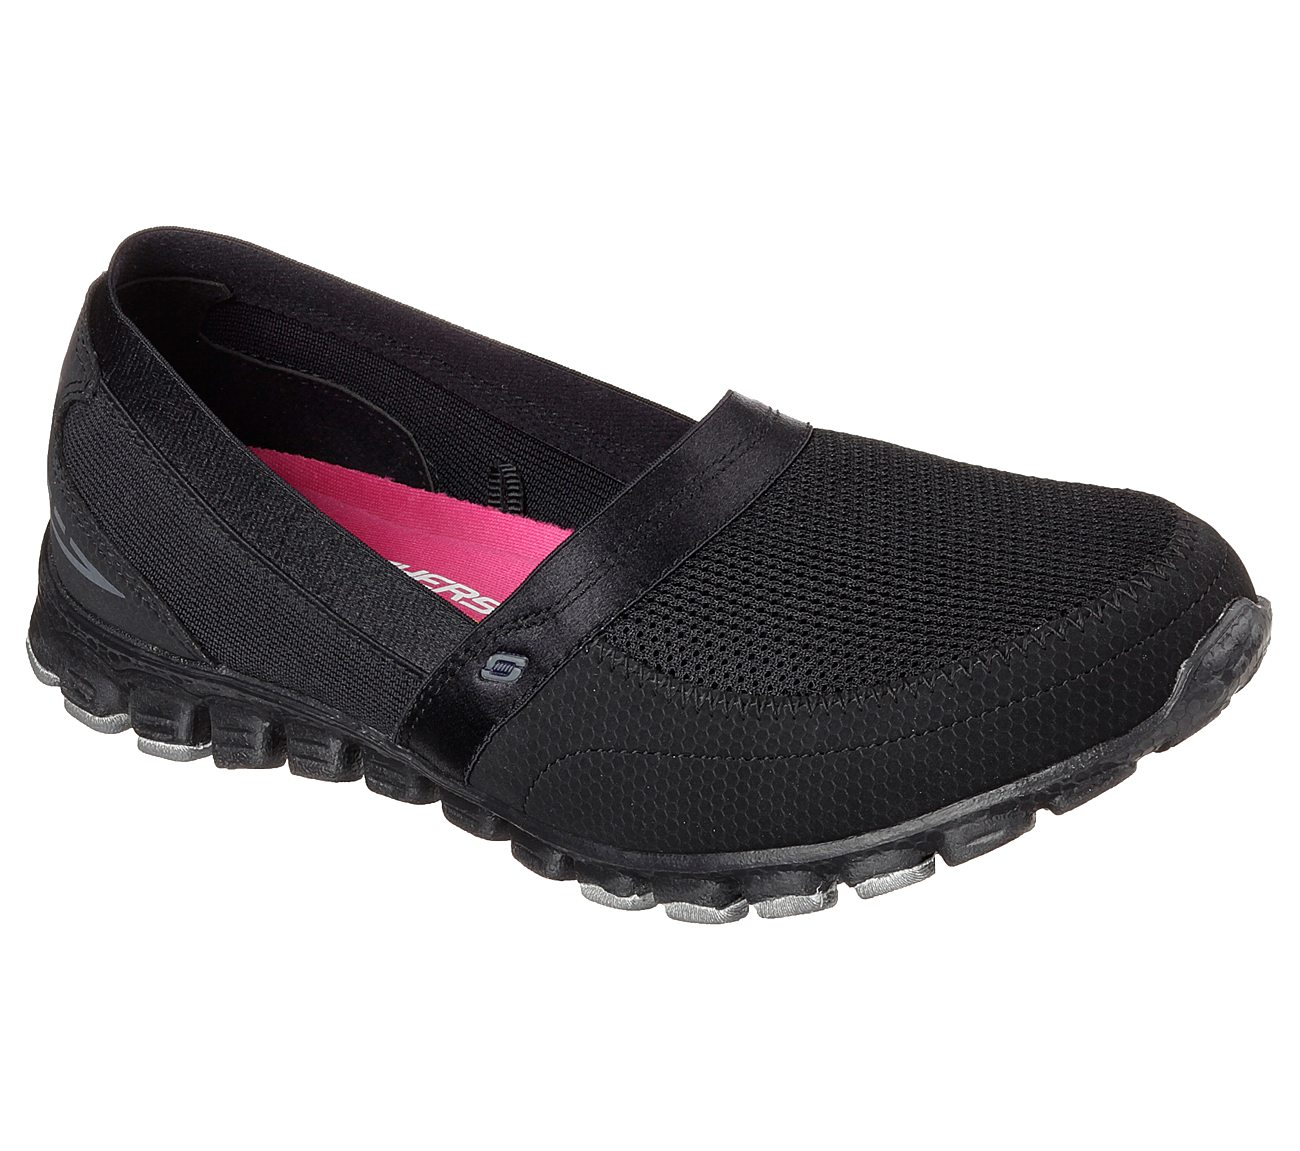 WOMEN'S SIZE 6 M SKECHERS 22258 EZ FLEX TAKE IT EASY SLIP ON